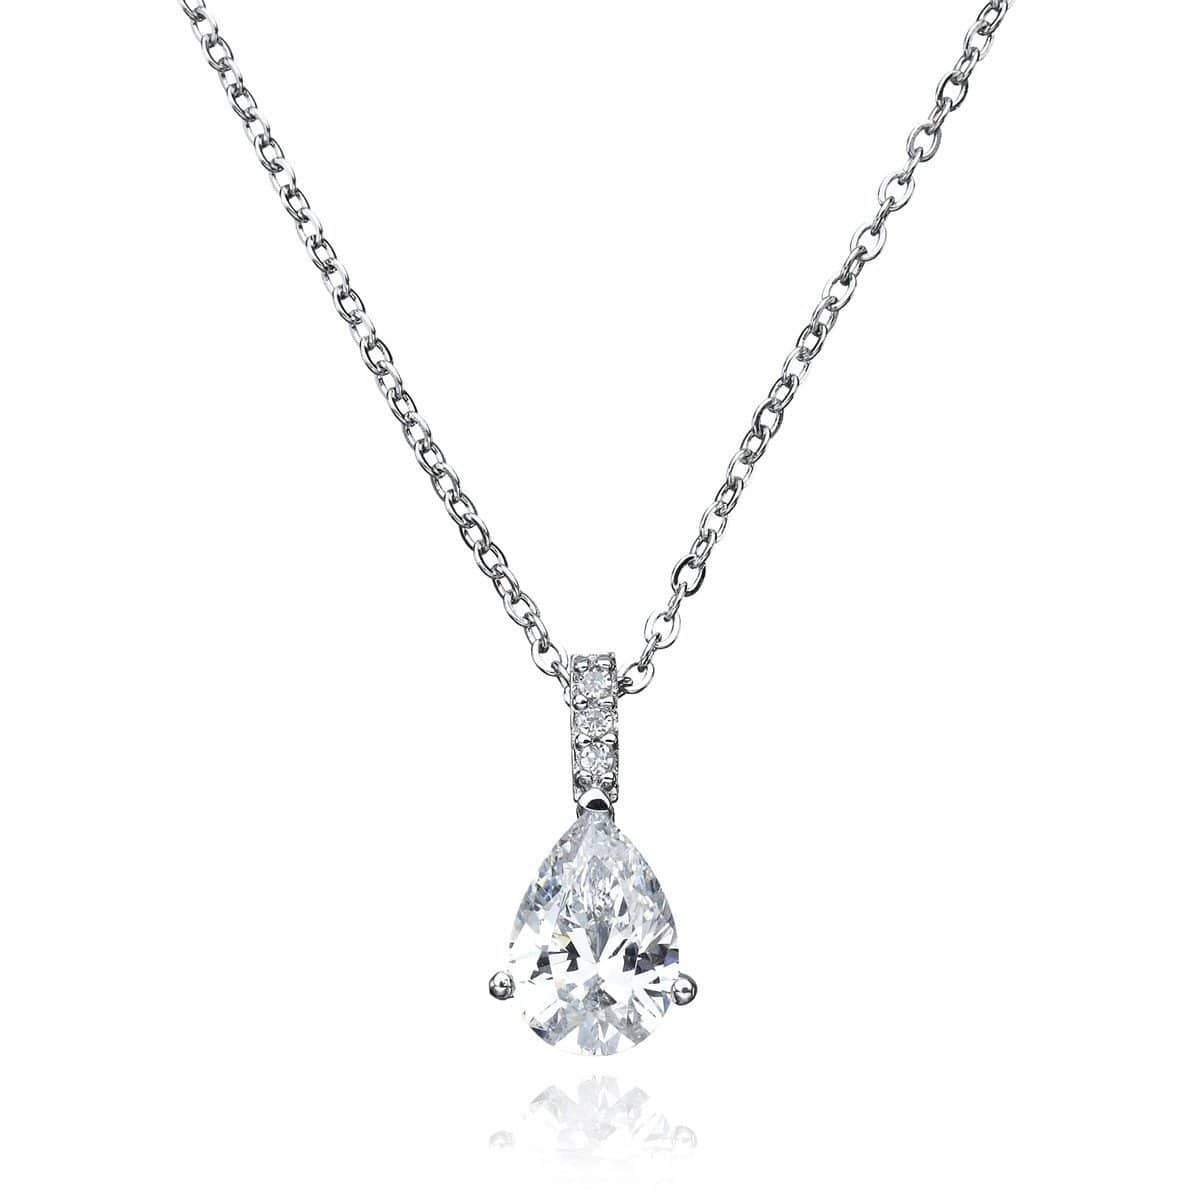 Crislu Jewelry CRISLU Accented Pear Pendant Finished in Pure Platinum